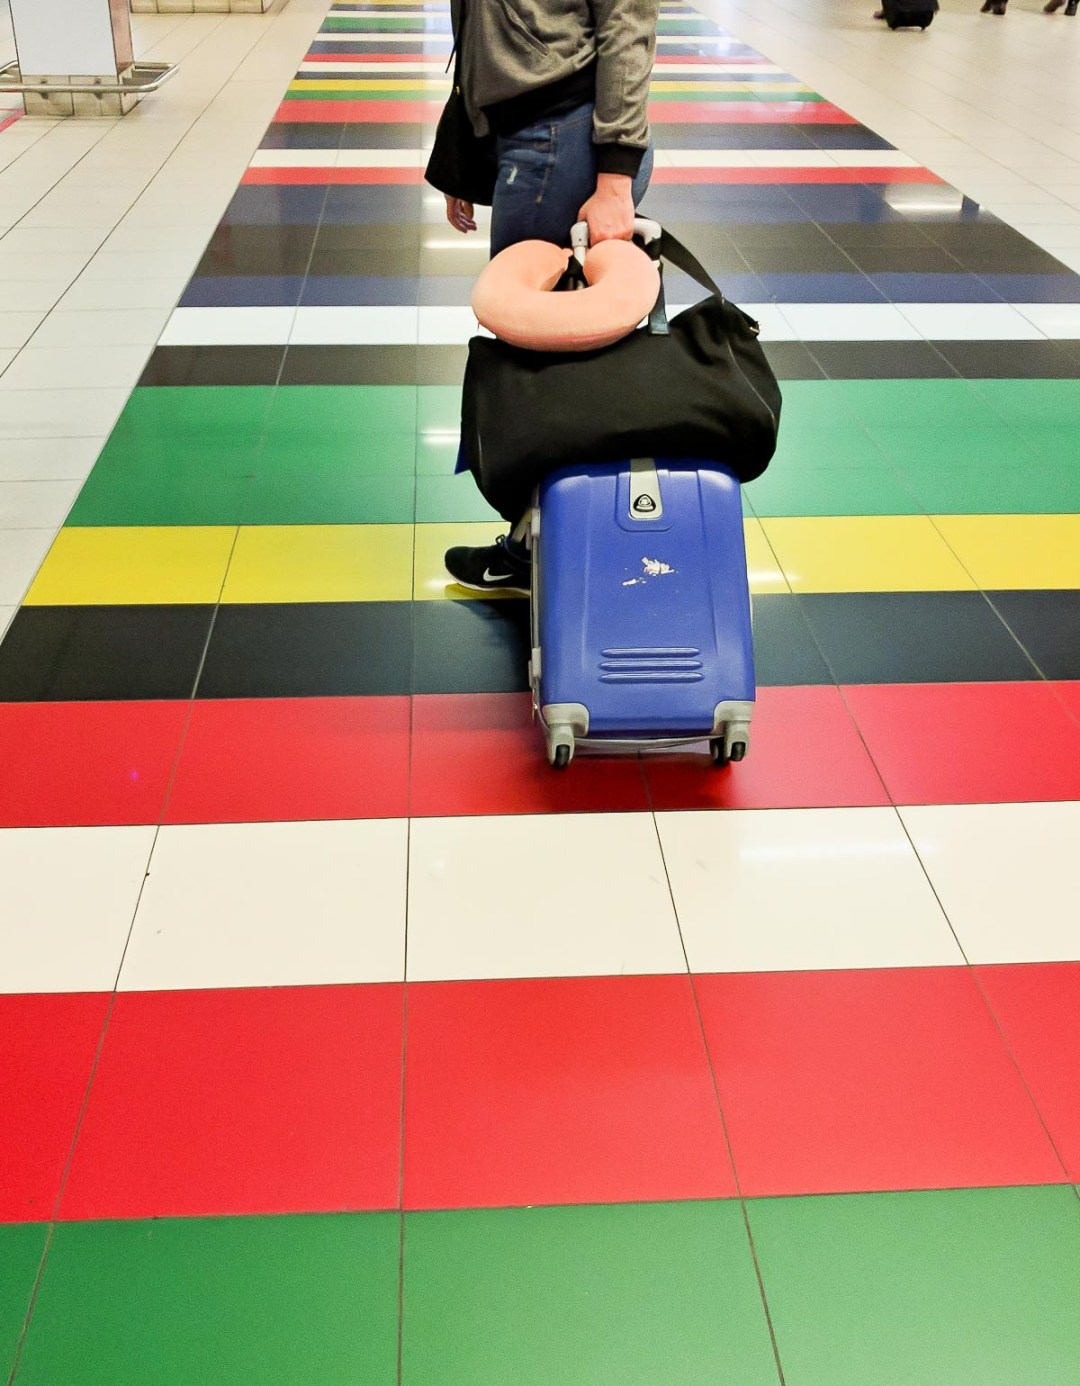 luggage on a bright colored floor